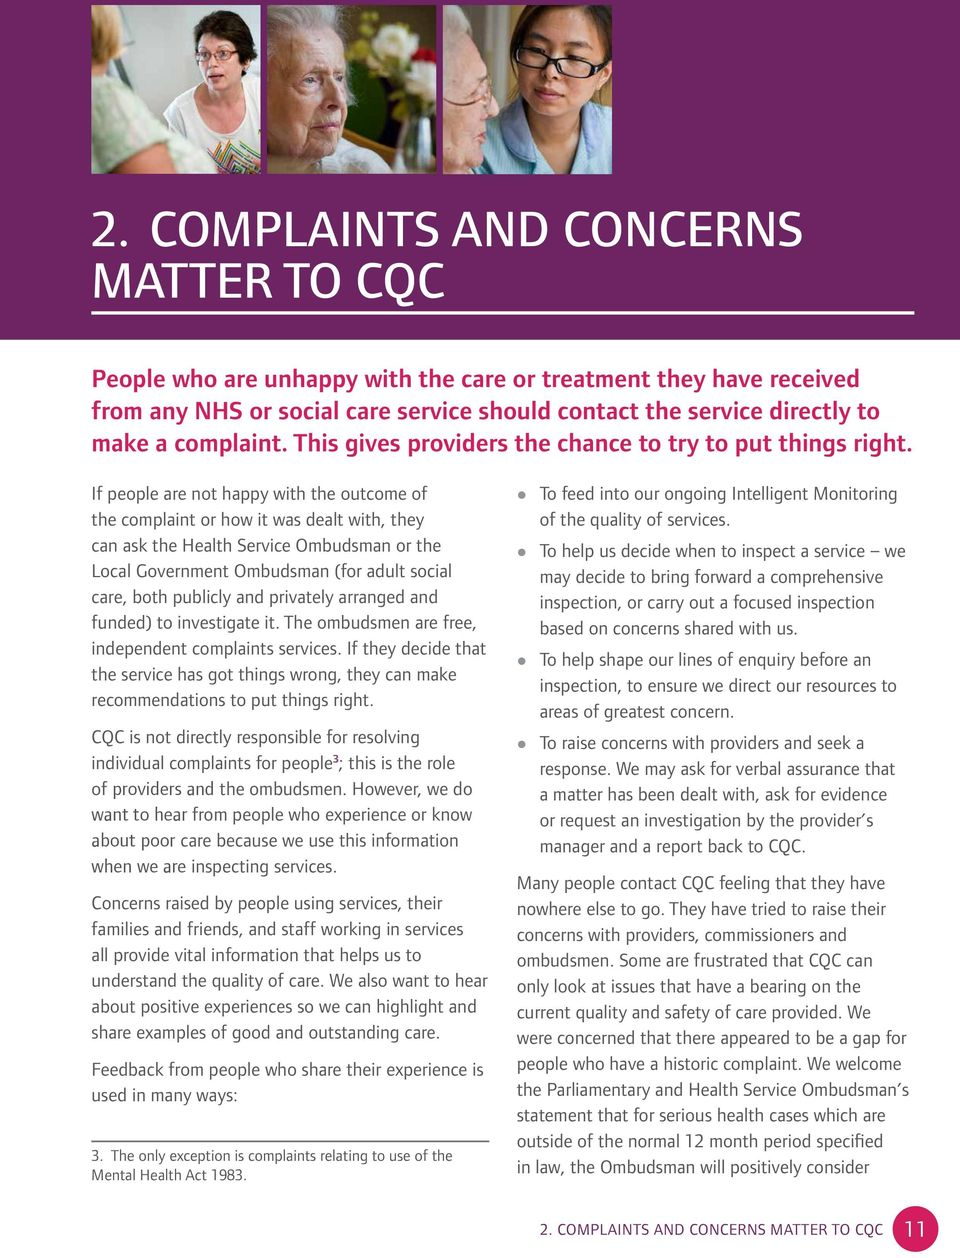 If people are not happy with the outcome of the complaint or how it was dealt with, they can ask the Health Service Ombudsman or the Local Government Ombudsman (for adult social care, both publicly